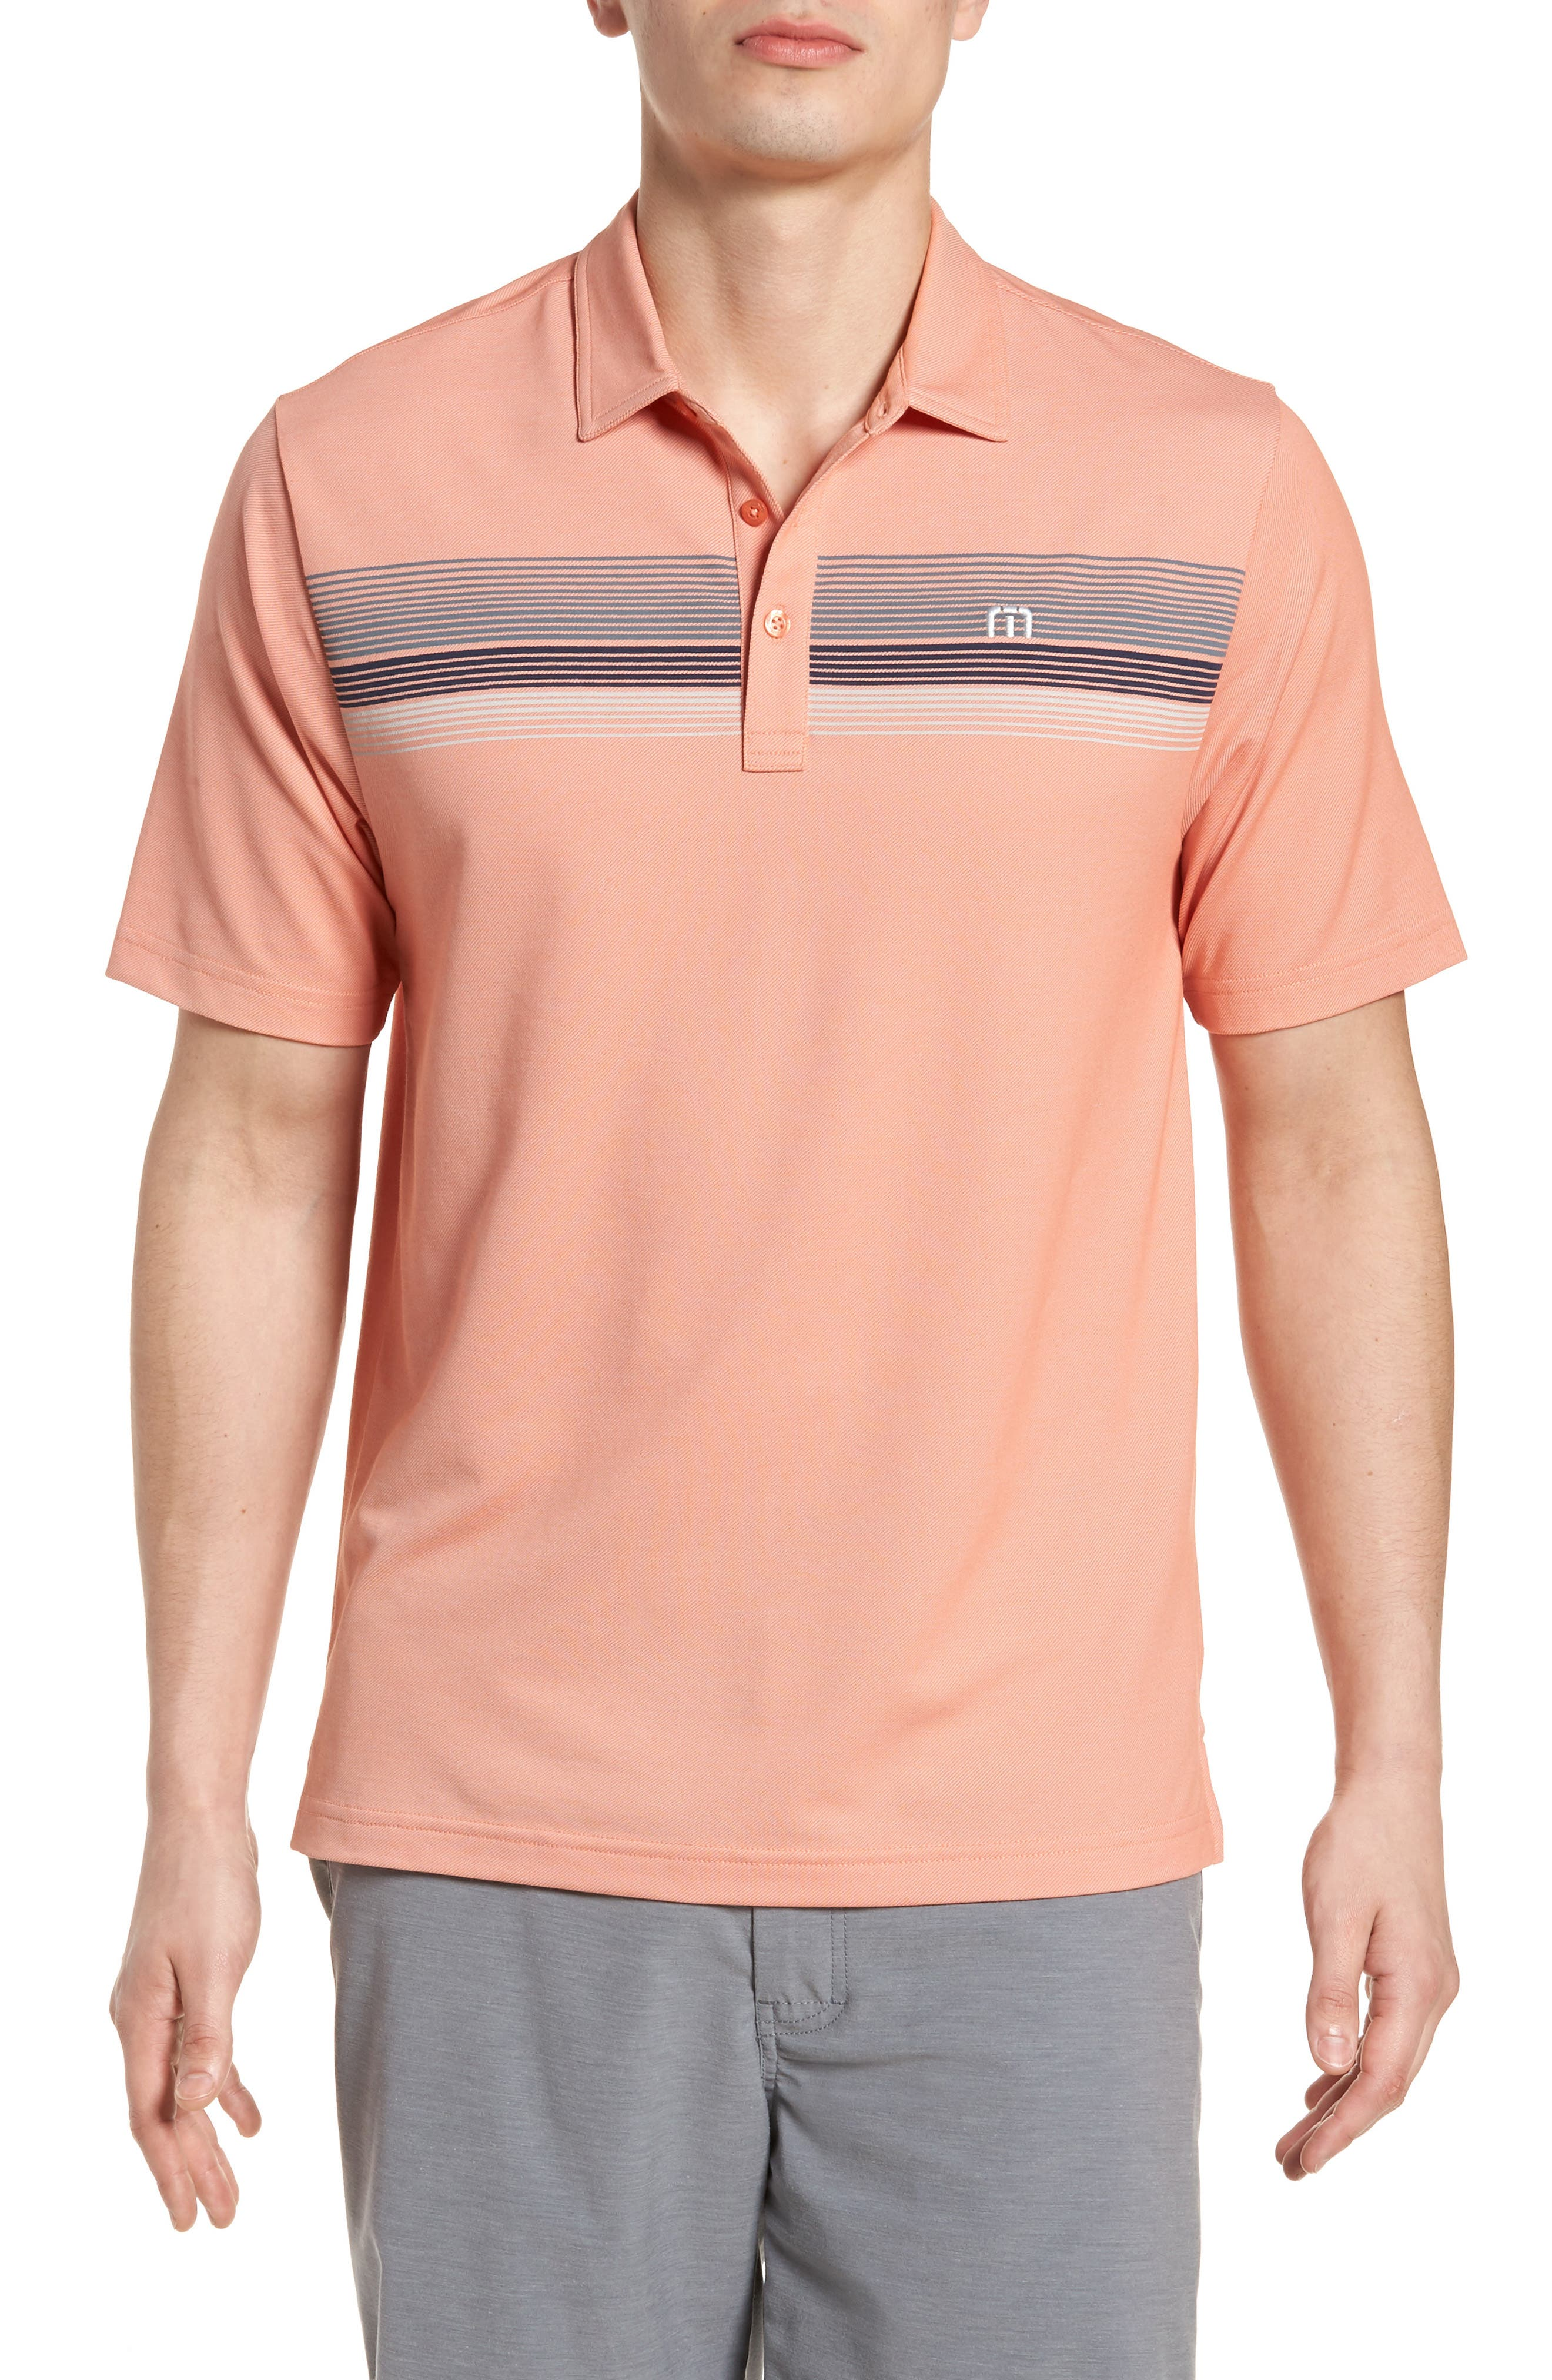 Alternate Image 1 Selected - Travis Mathew Happy Jelly Regular Fit Polo